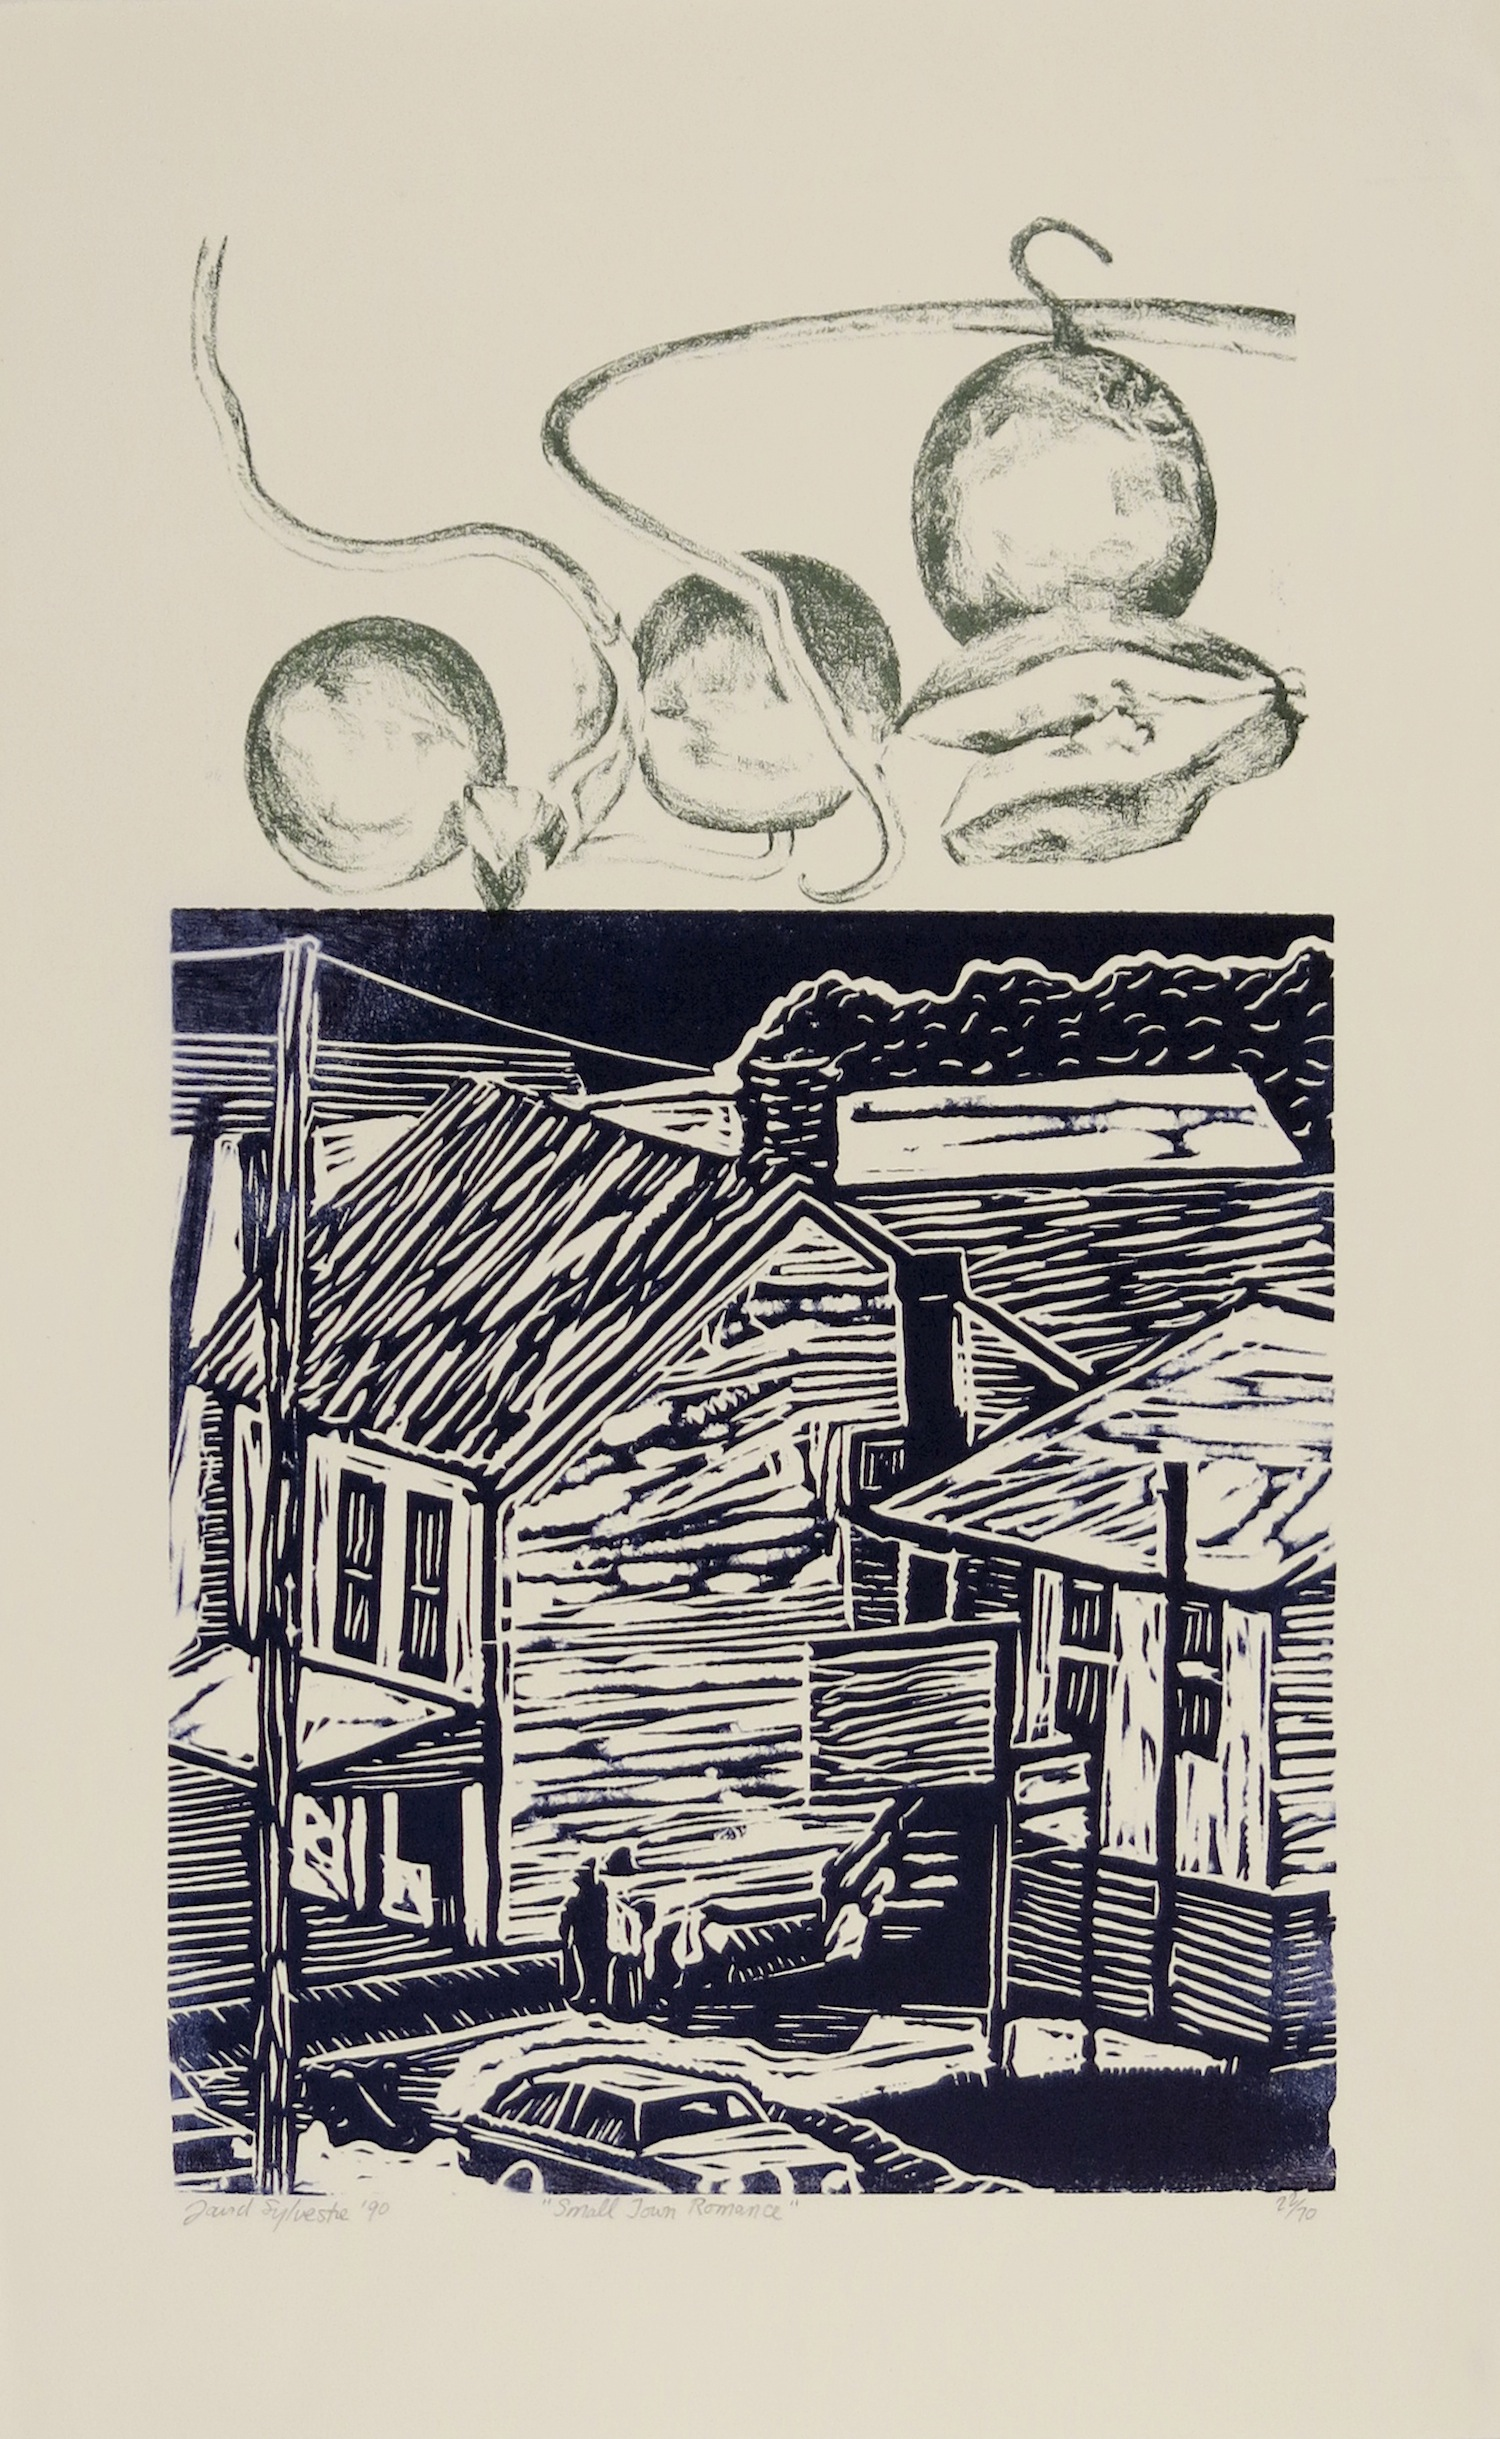 DAVID SYLVESTRE  Small Town Romance , 1990 Linocut and offset lithograph